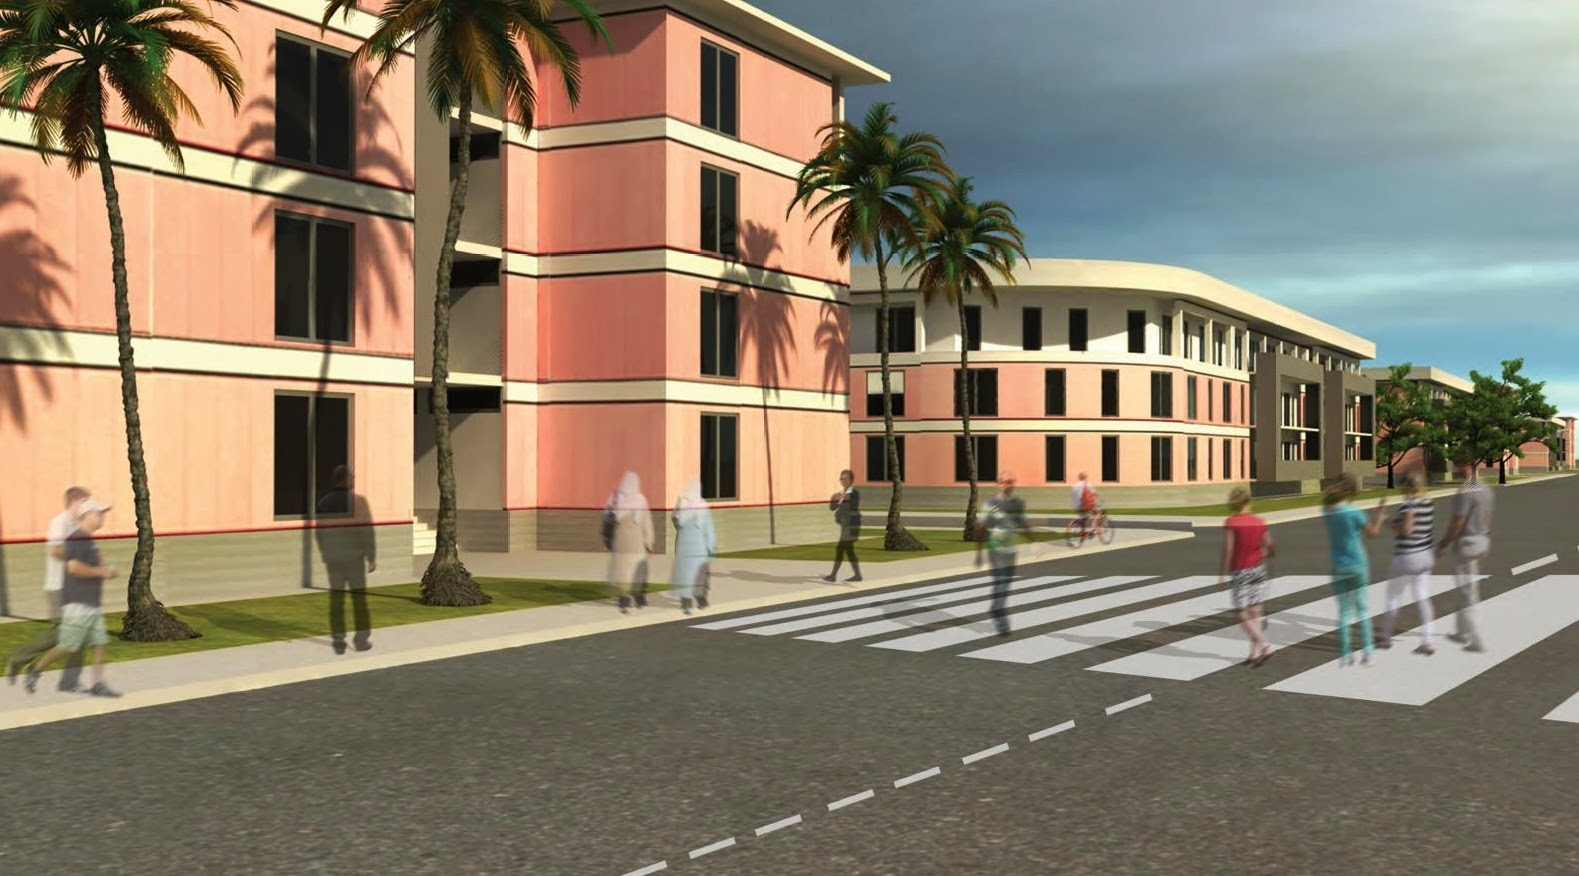 Eritrea to build 1 680 modern homes and shops in asmara for New house project